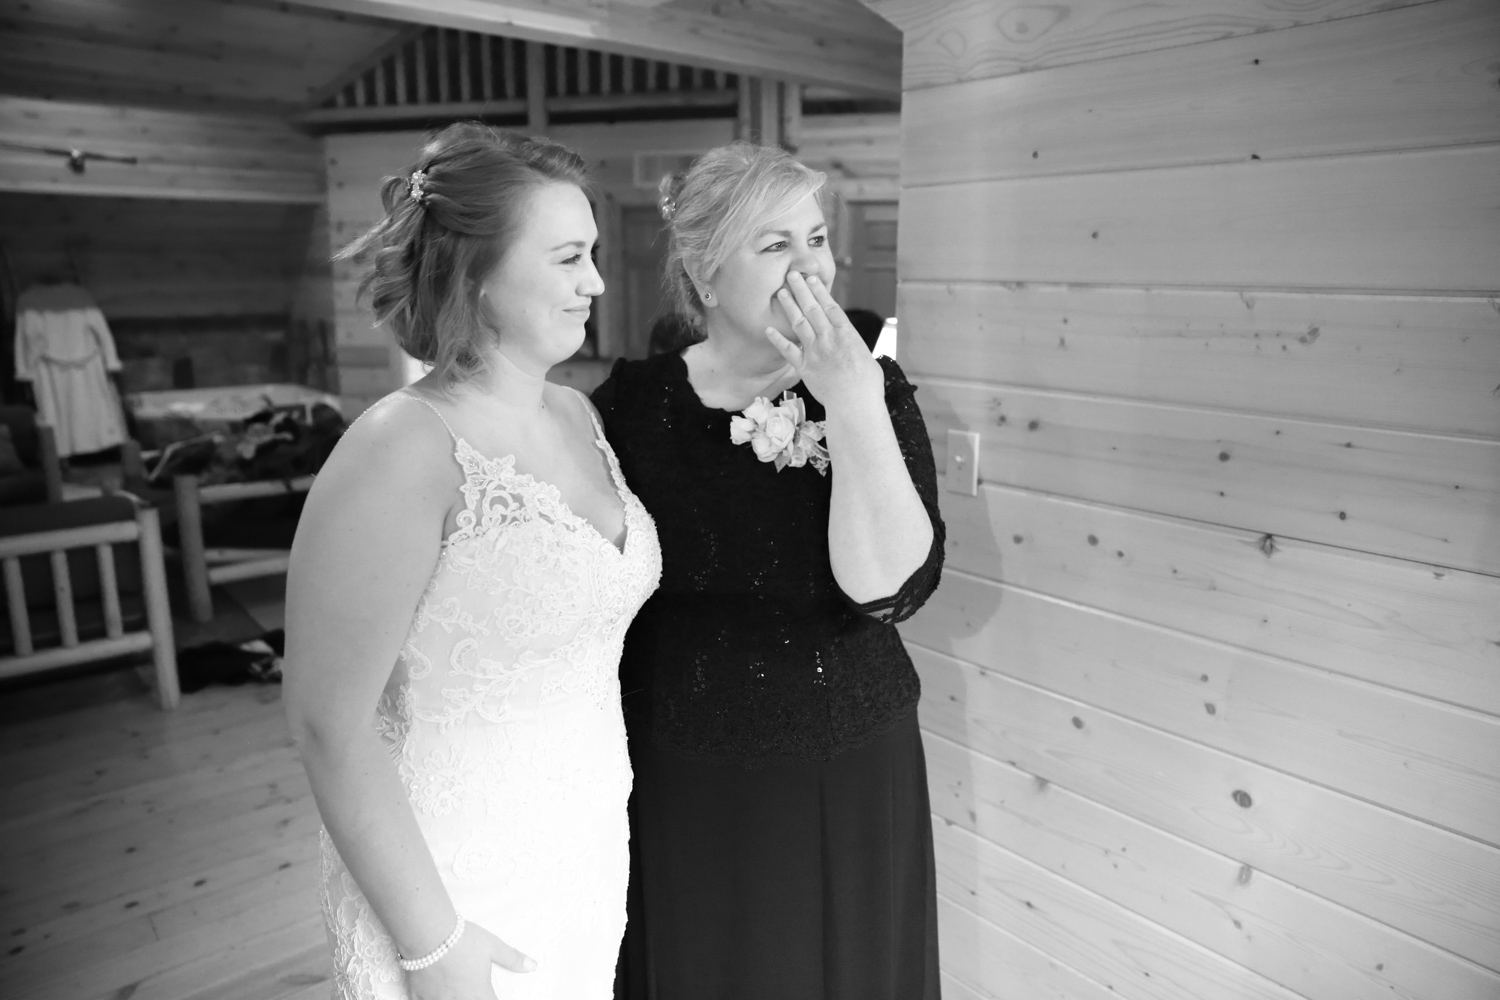 Wedding Photos Mountain Springs Lodge Leavenworth Washington03.jpg